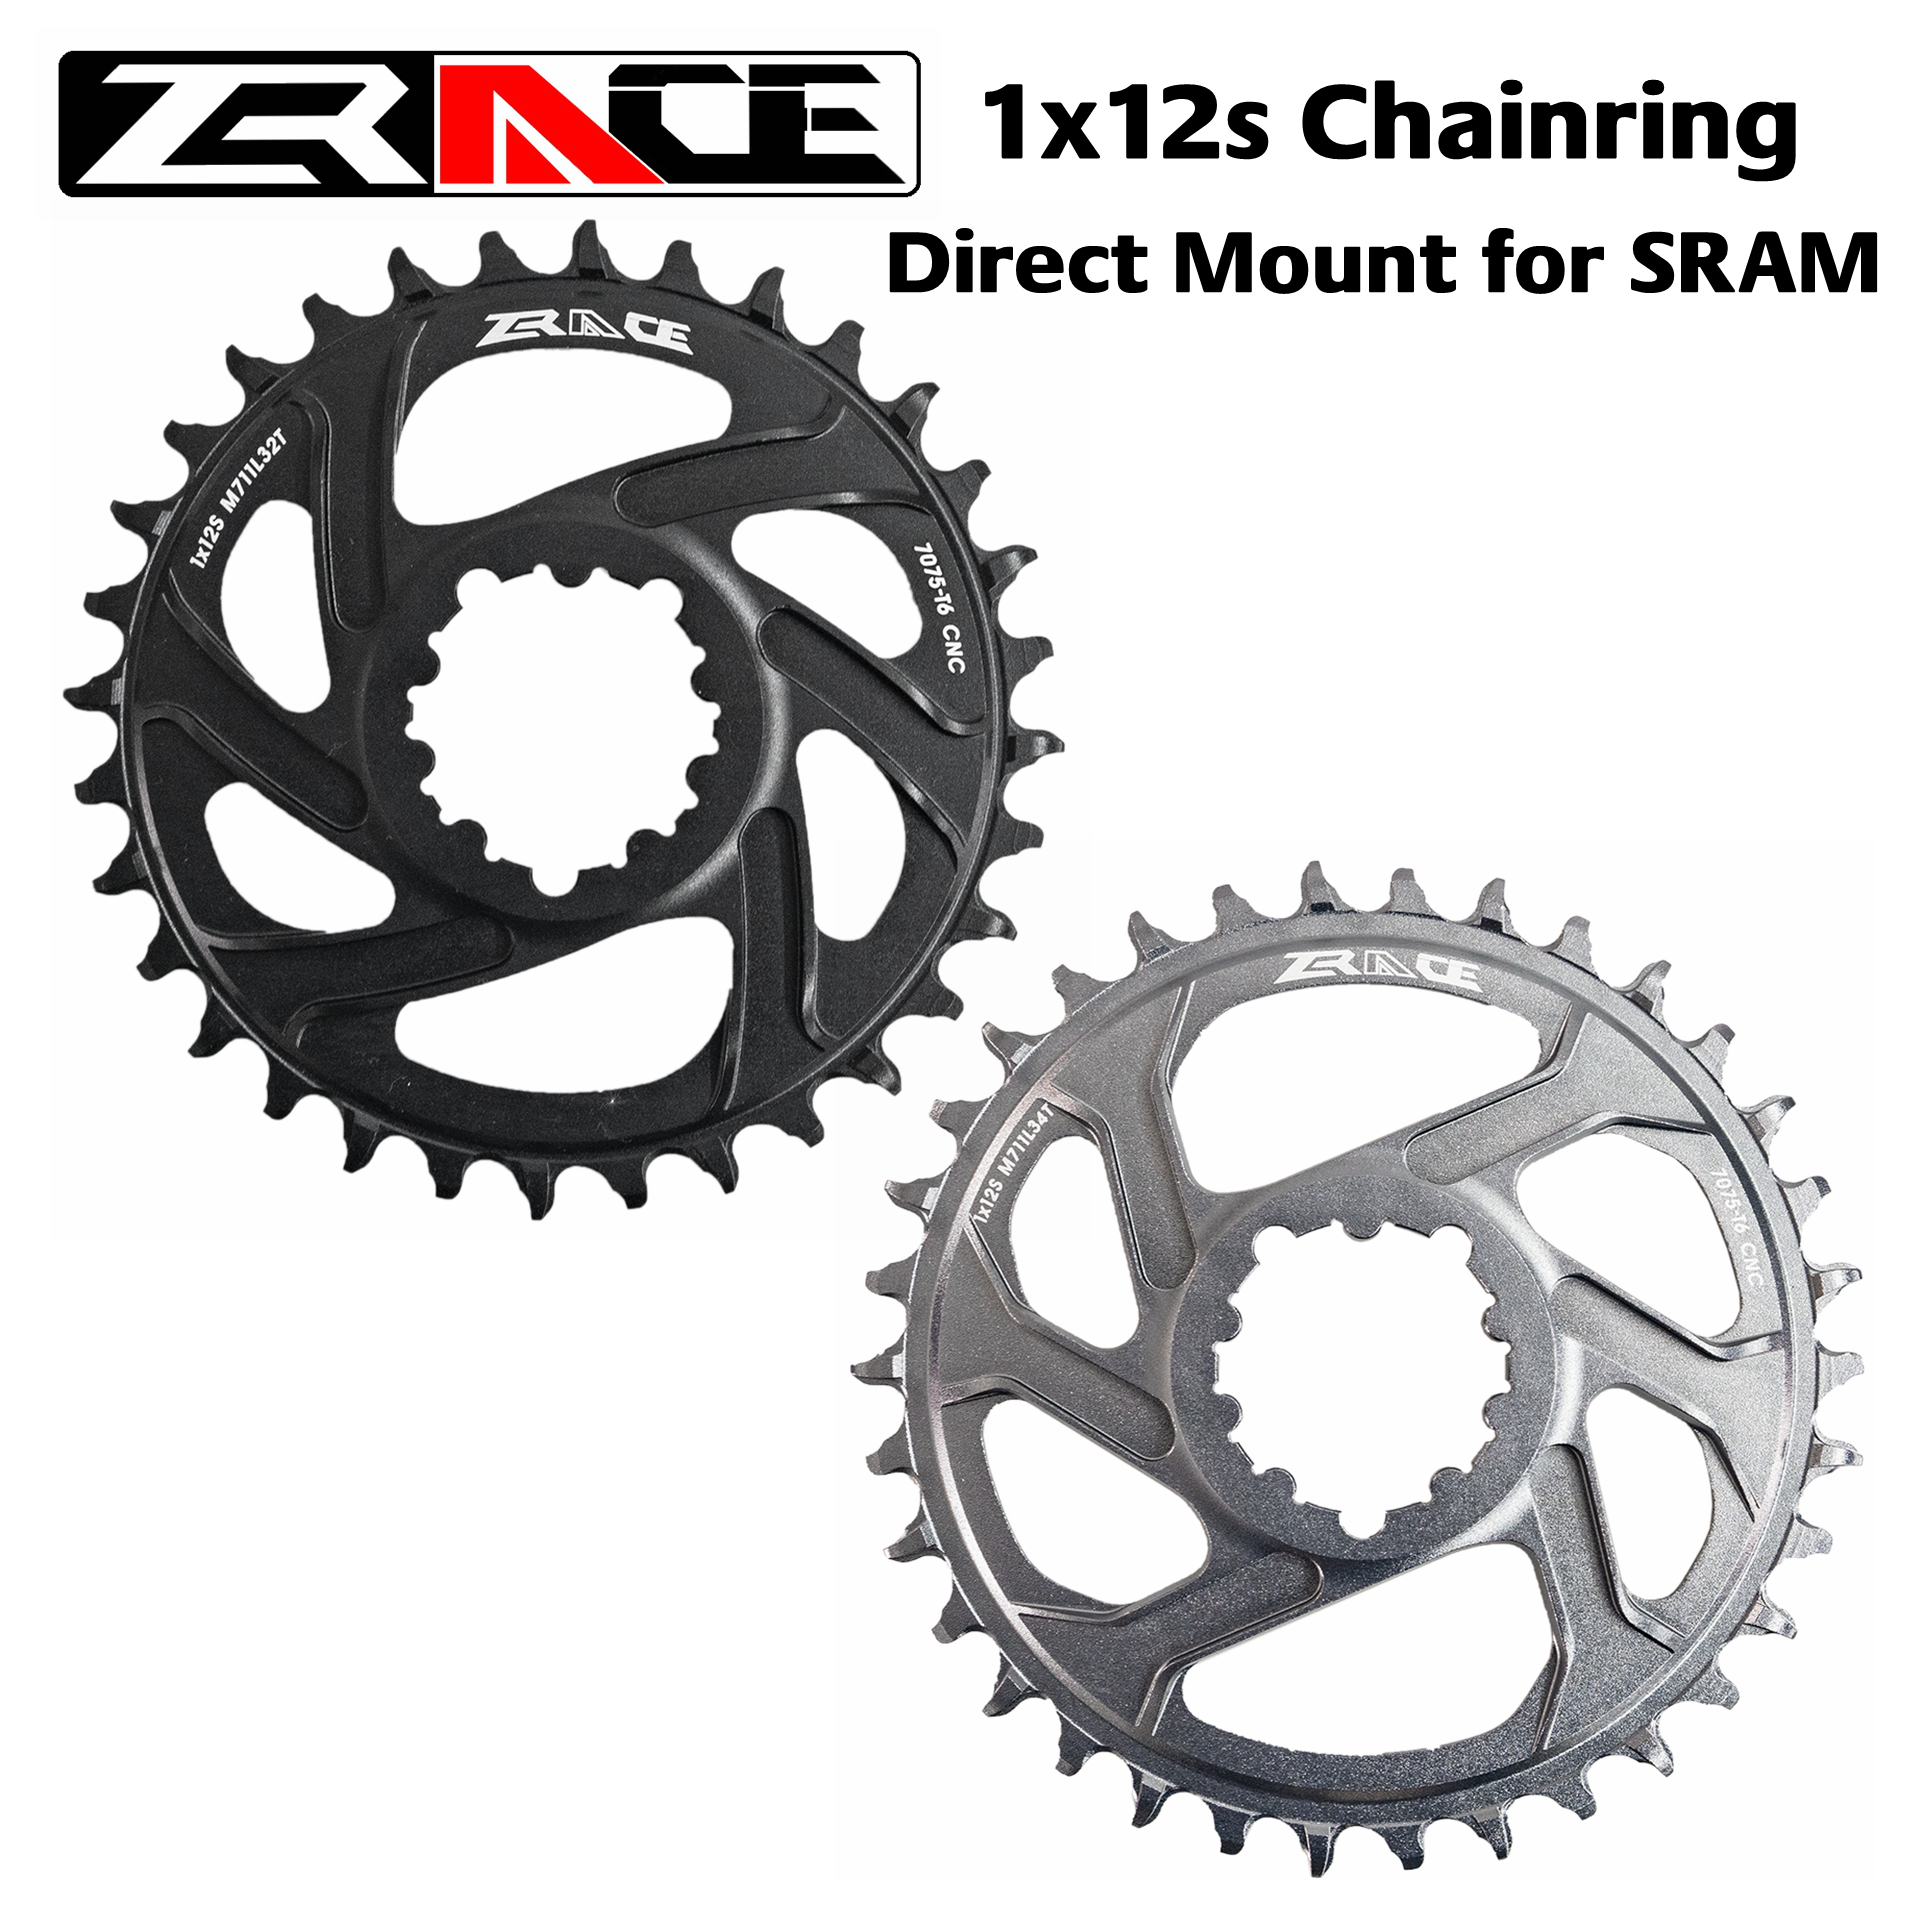 ZRACE 1 x 12s Chainrings, 28/30/32/34/36T 7075AL Vickers-hardness 21, offset 6mm, for SRAM Direct Mount Crank, compatible Eagle image